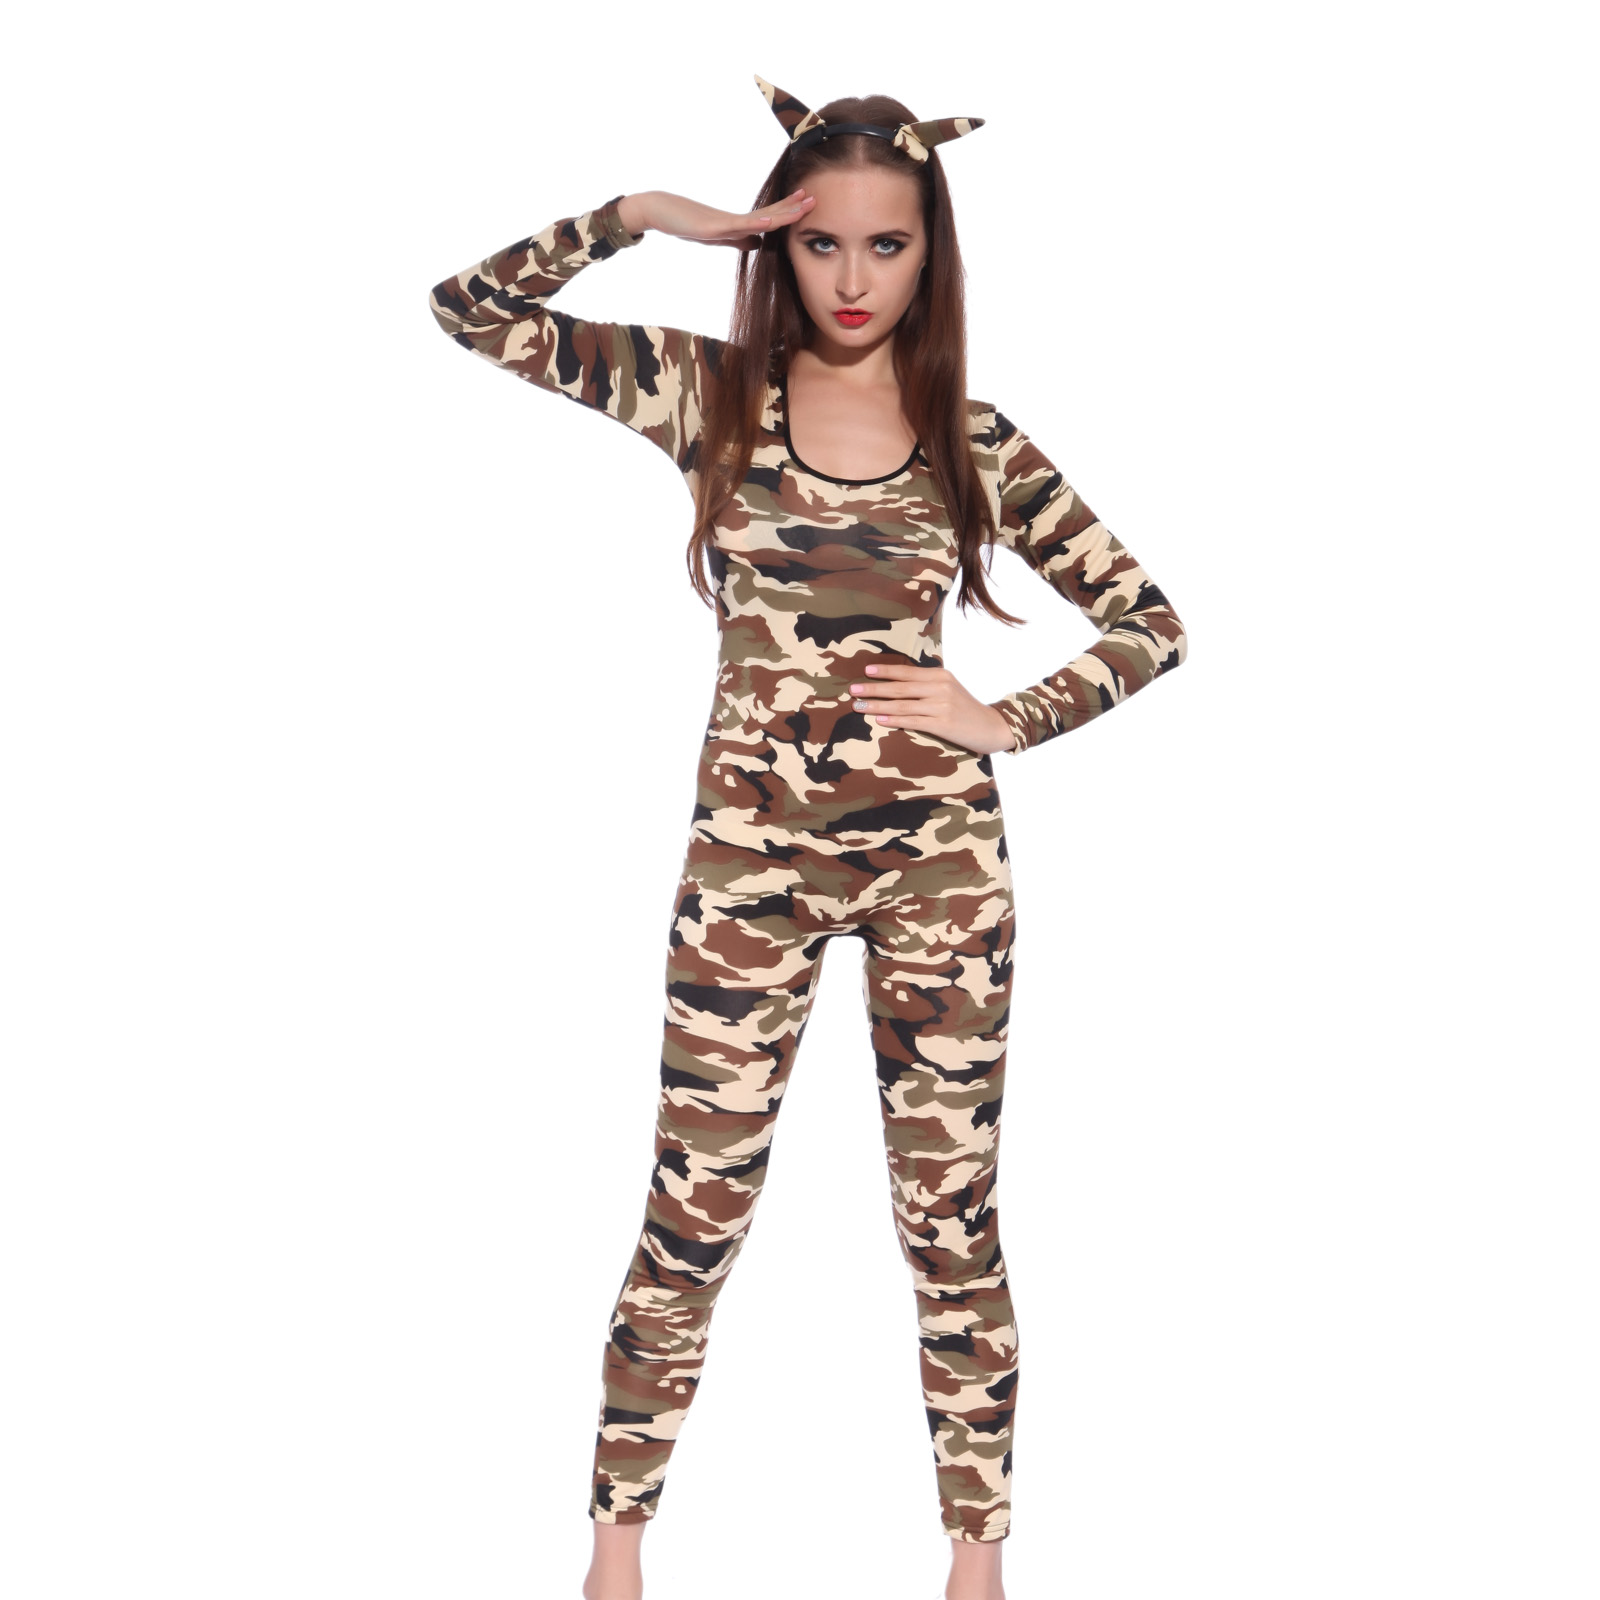 sexy ladies bodystocking bodysuit camo camouflage print fancy dress costume ebay. Black Bedroom Furniture Sets. Home Design Ideas